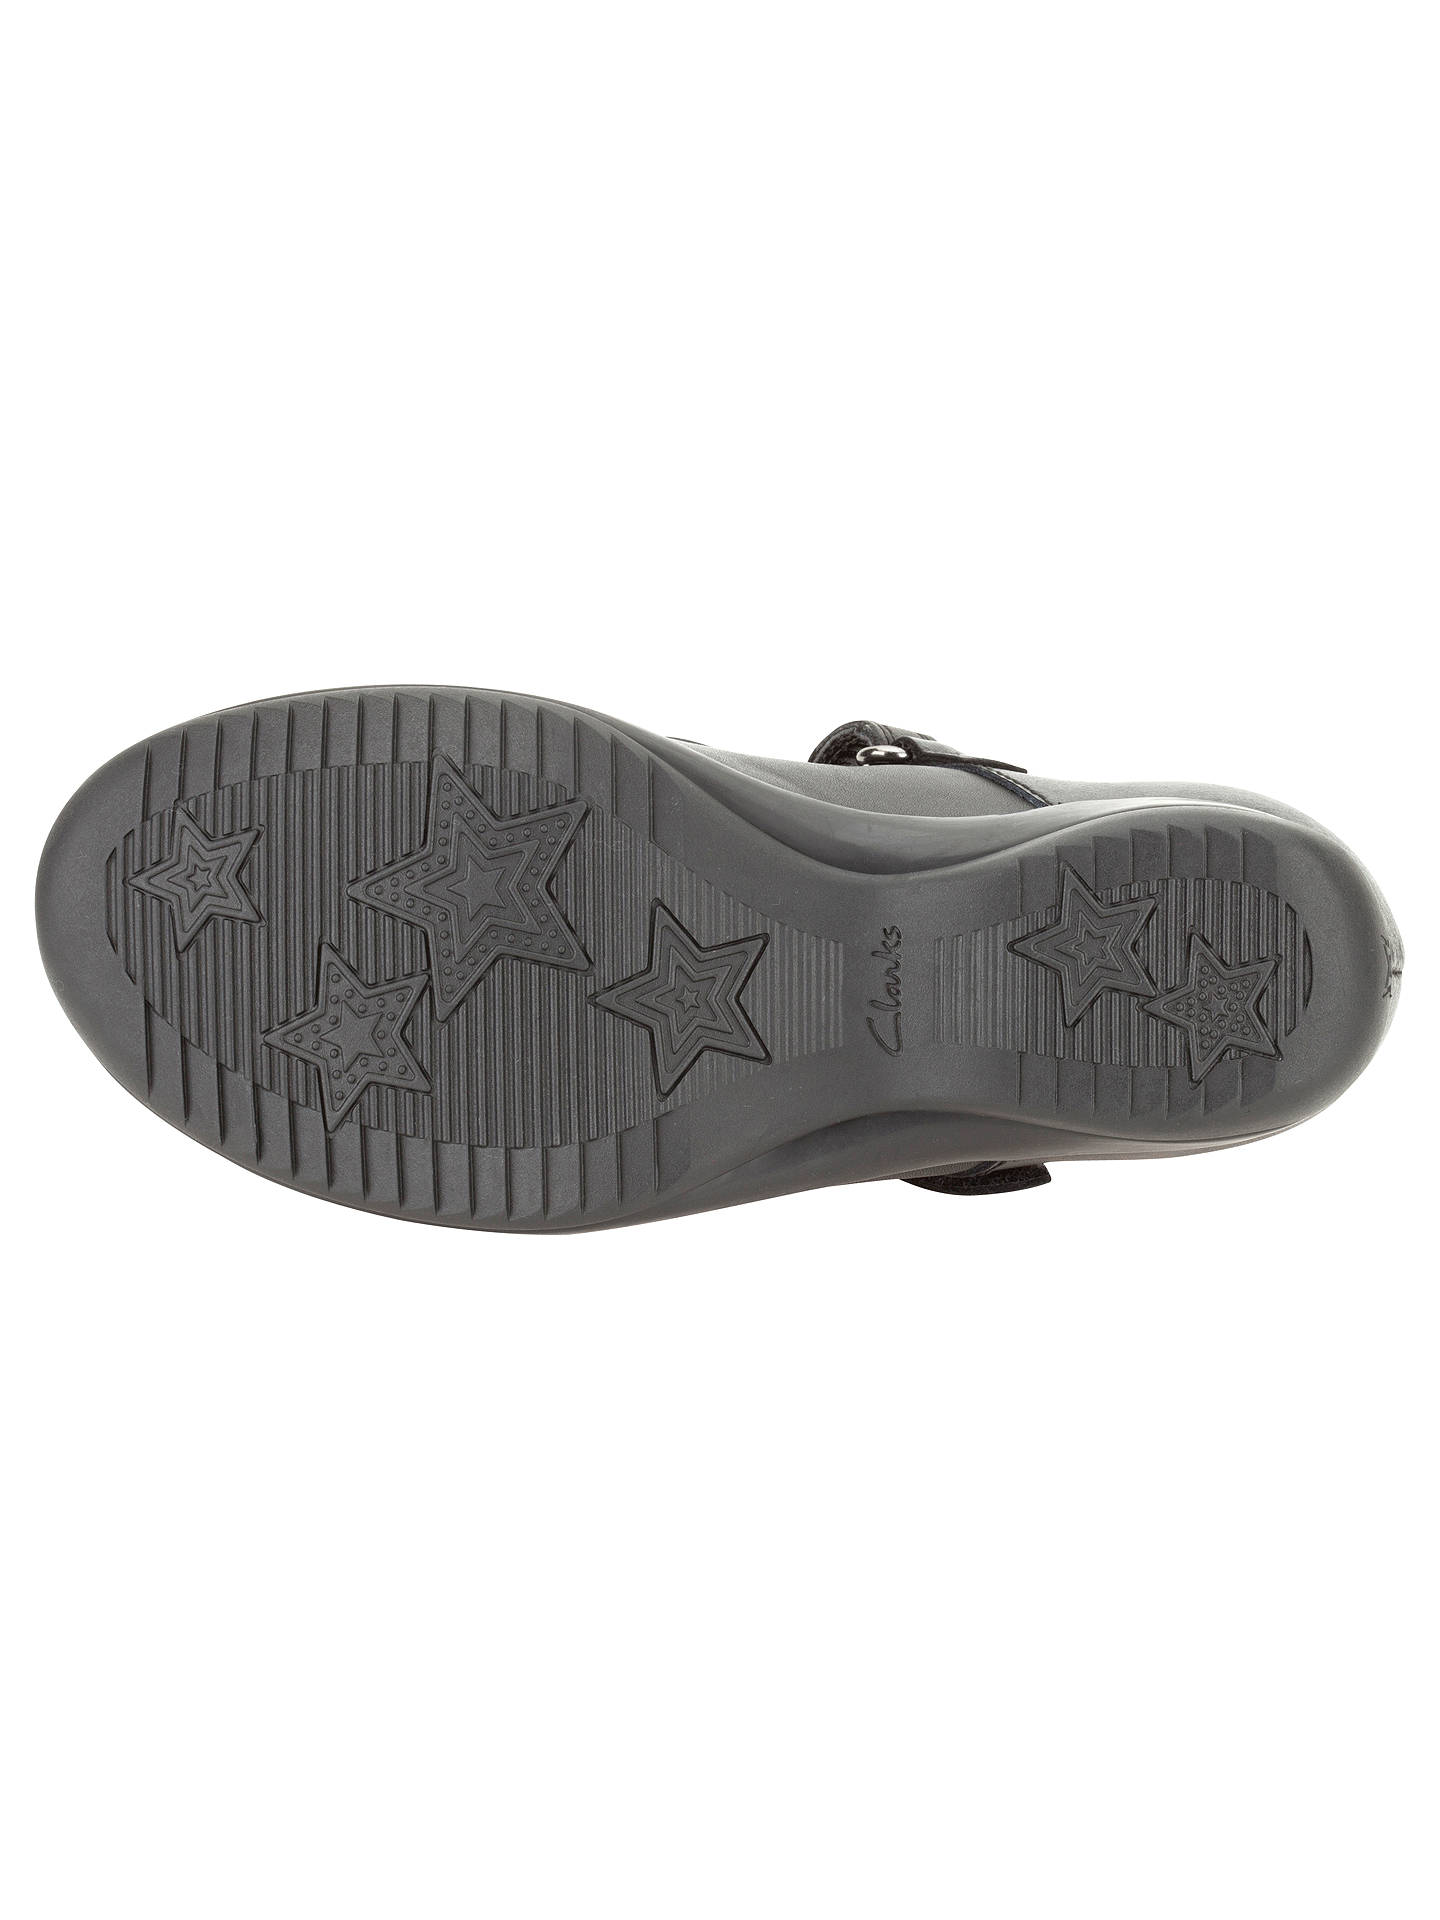 9853d41cd4977 ... Buy Clarks Daisy Gleam Leather Mary Jane Shoes, Black, 10E Jnr Online  at johnlewis